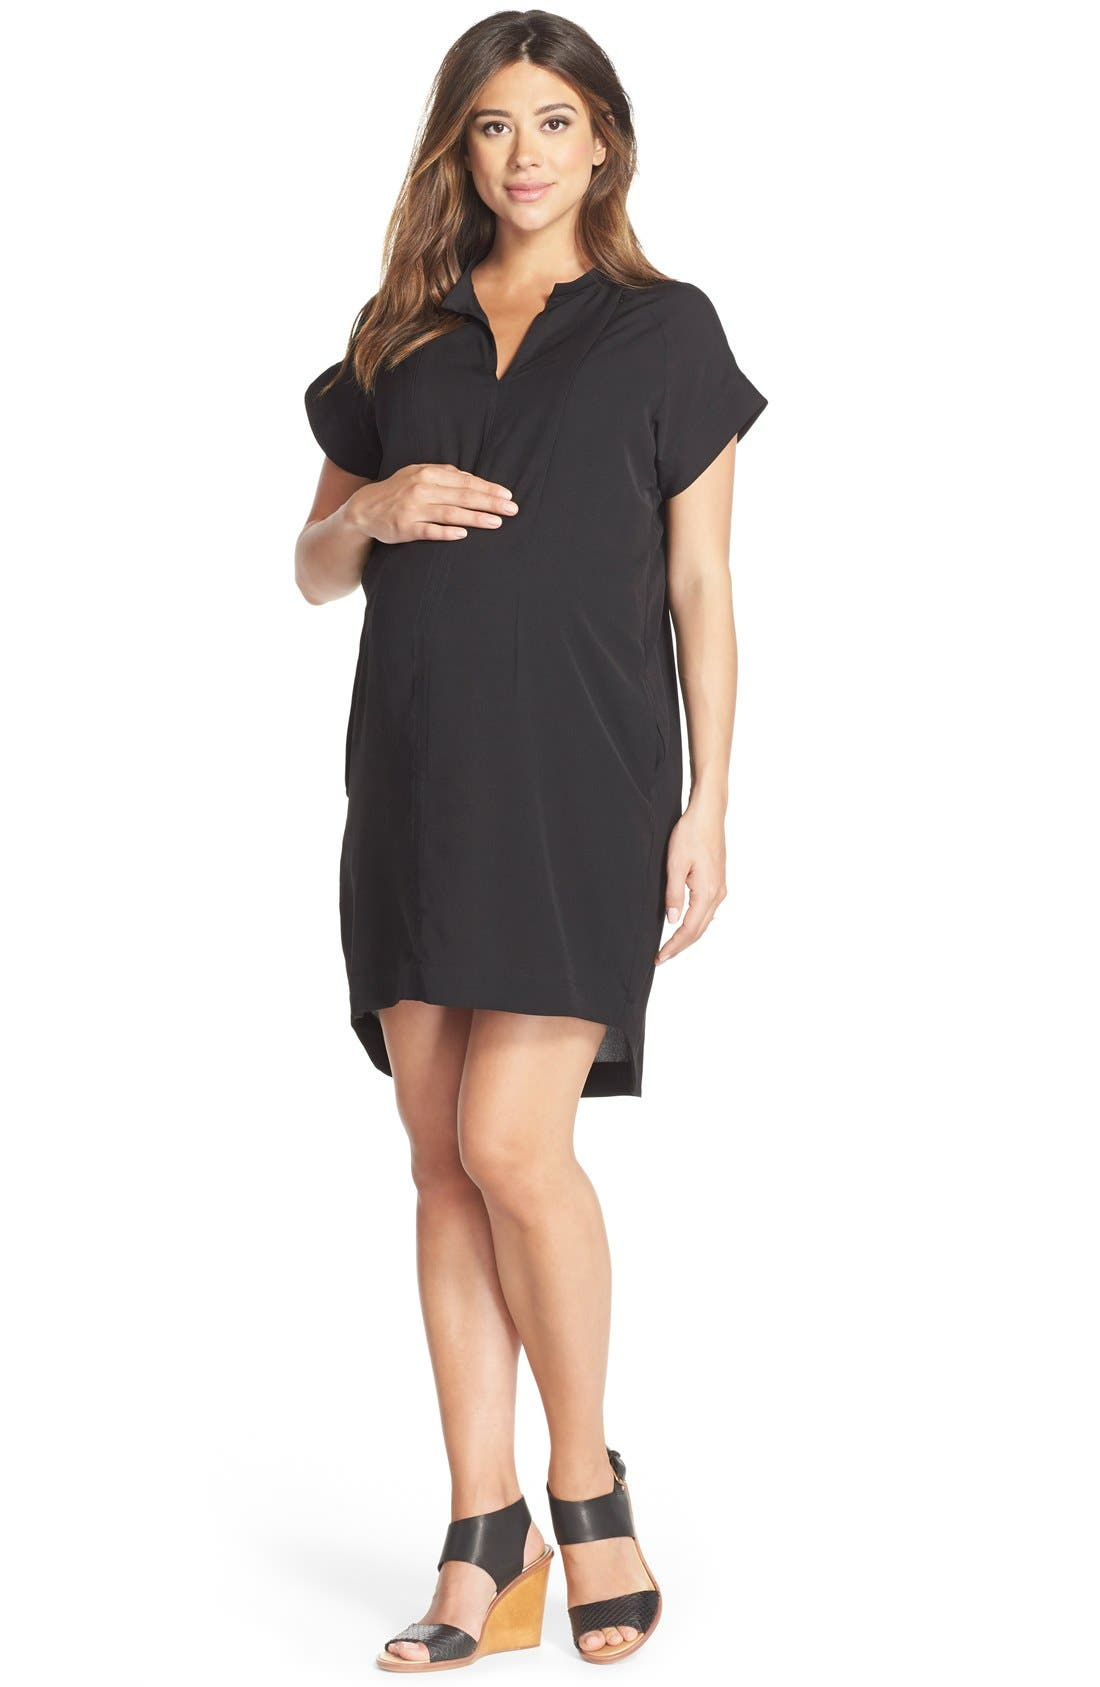 Alternate Image 1 Selected - Loyal Hana 'Cybelle' Maternity/Nursing Shirtdress